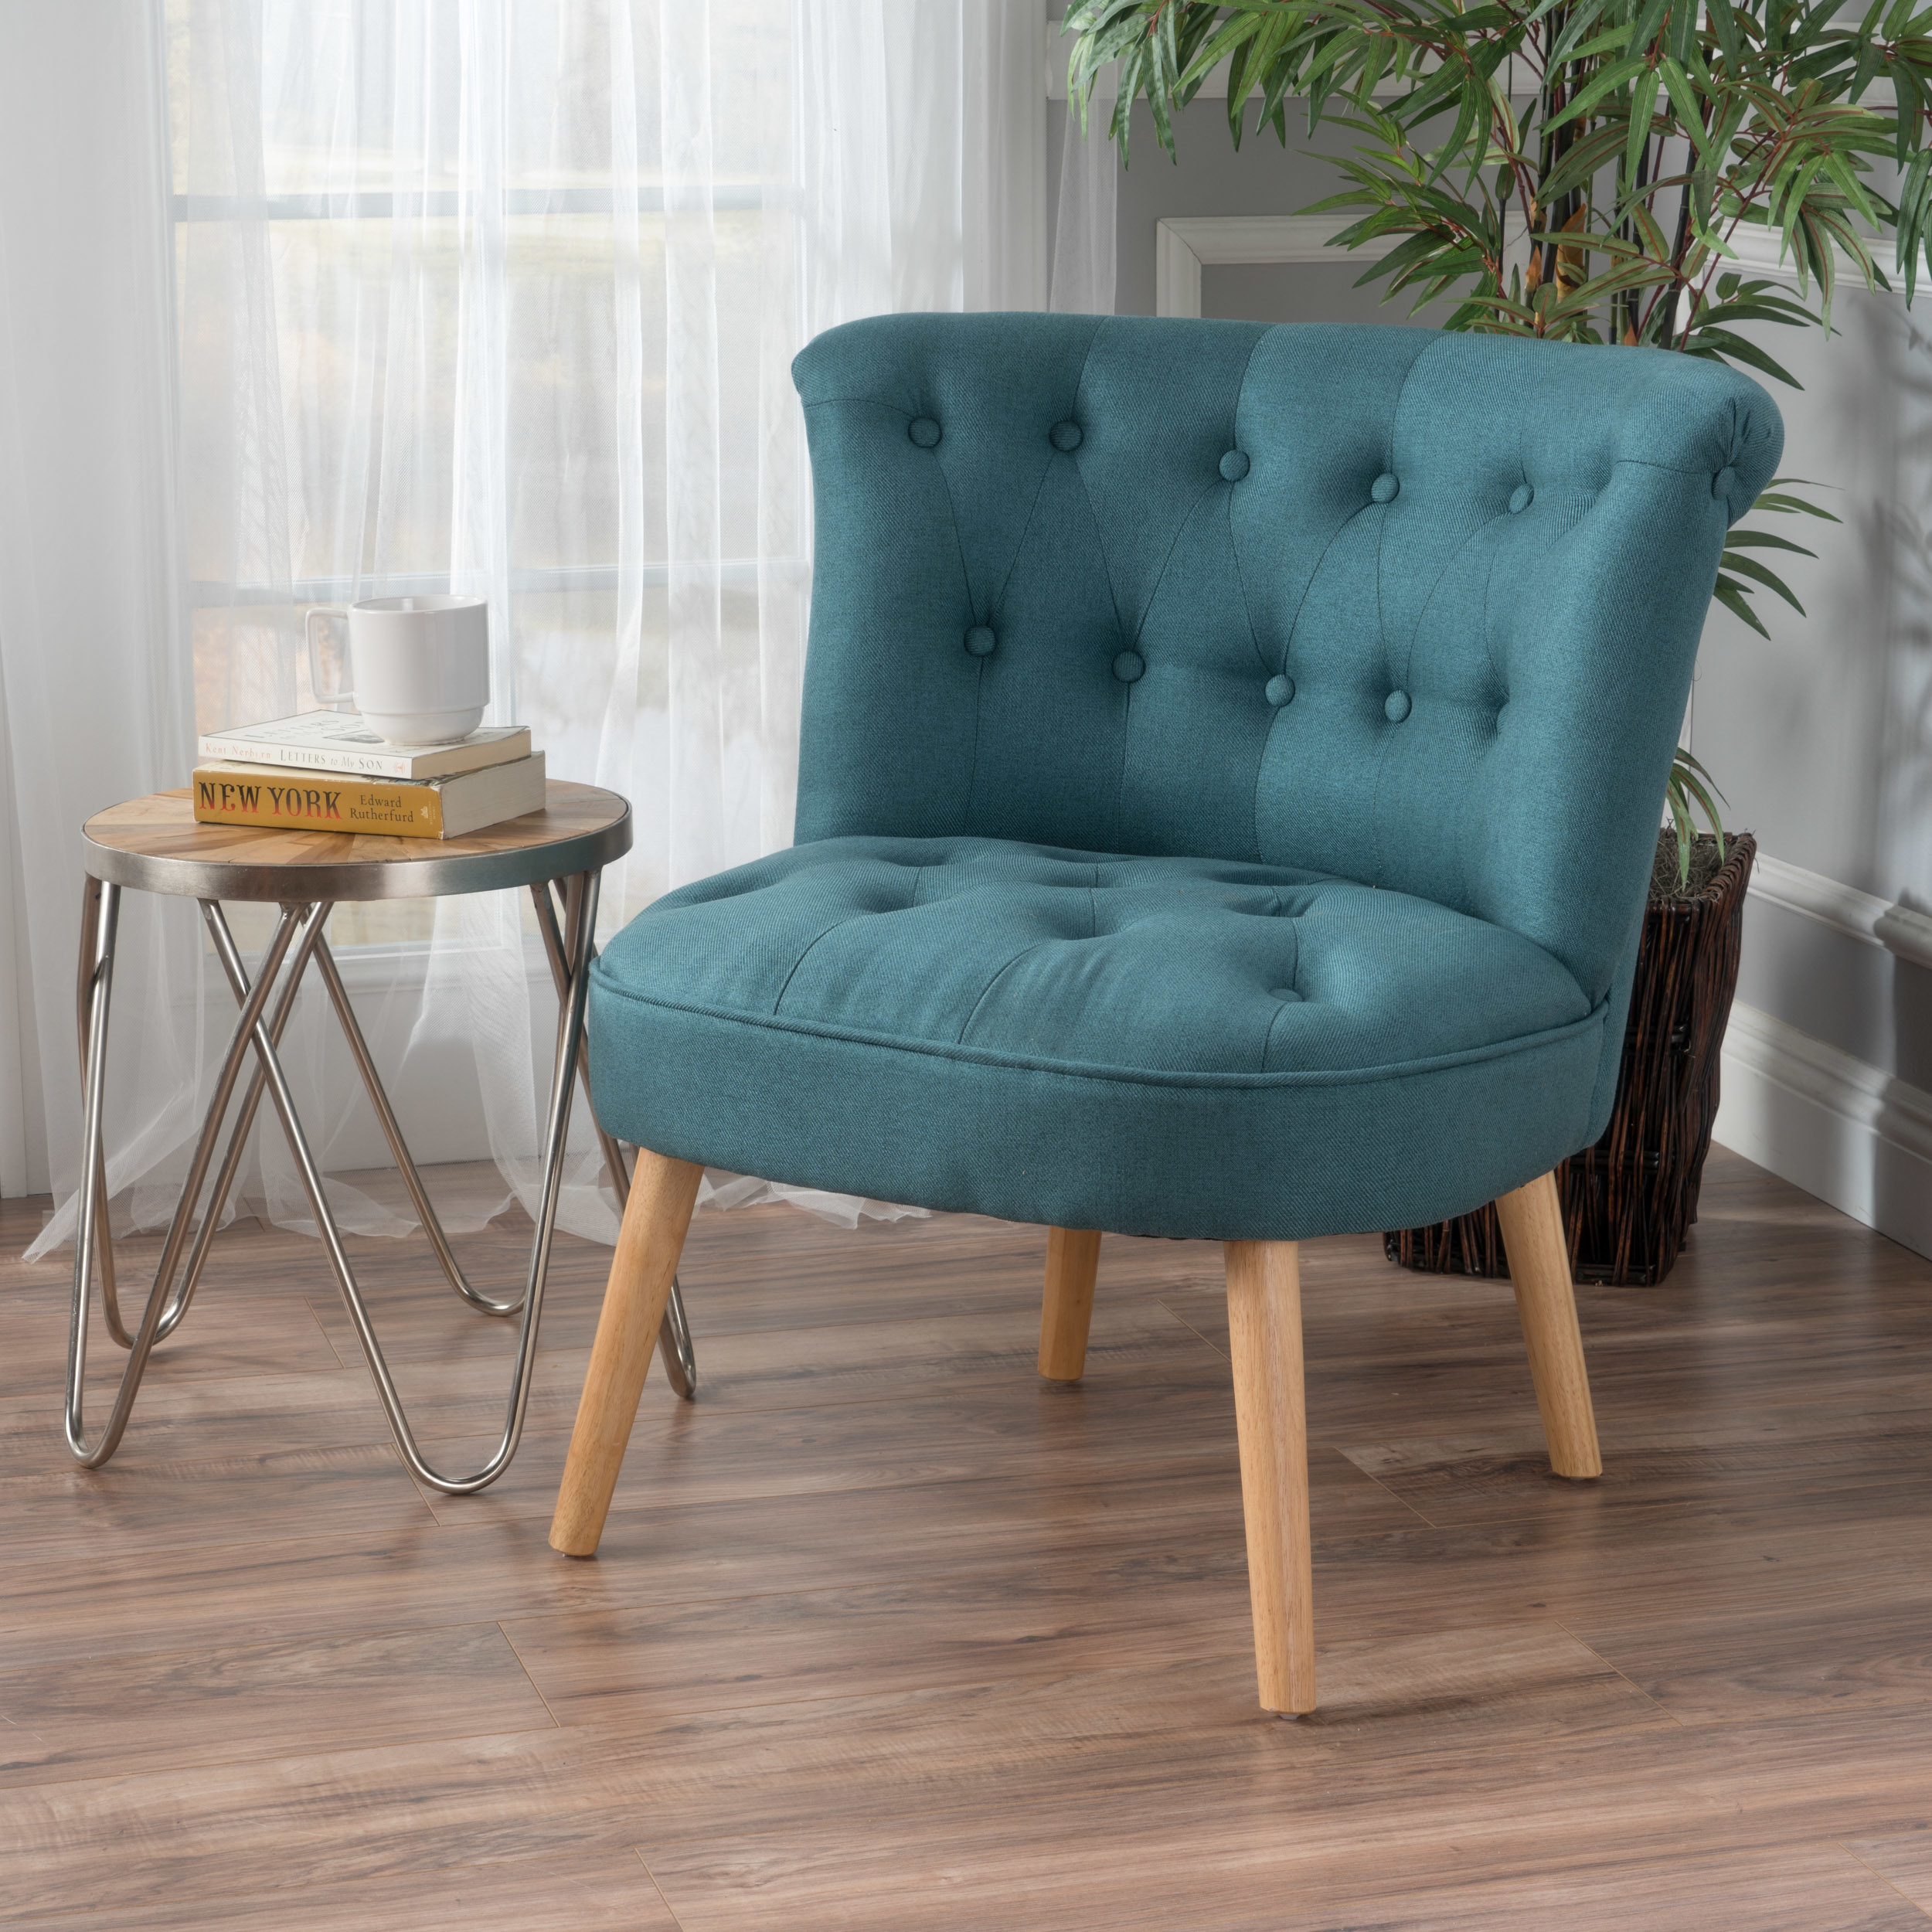 Plush Chairs Us 152 09 Donna Plush Modern Tufted Accent Chair In Living Room Chairs From Furniture On Aliexpress Alibaba Group